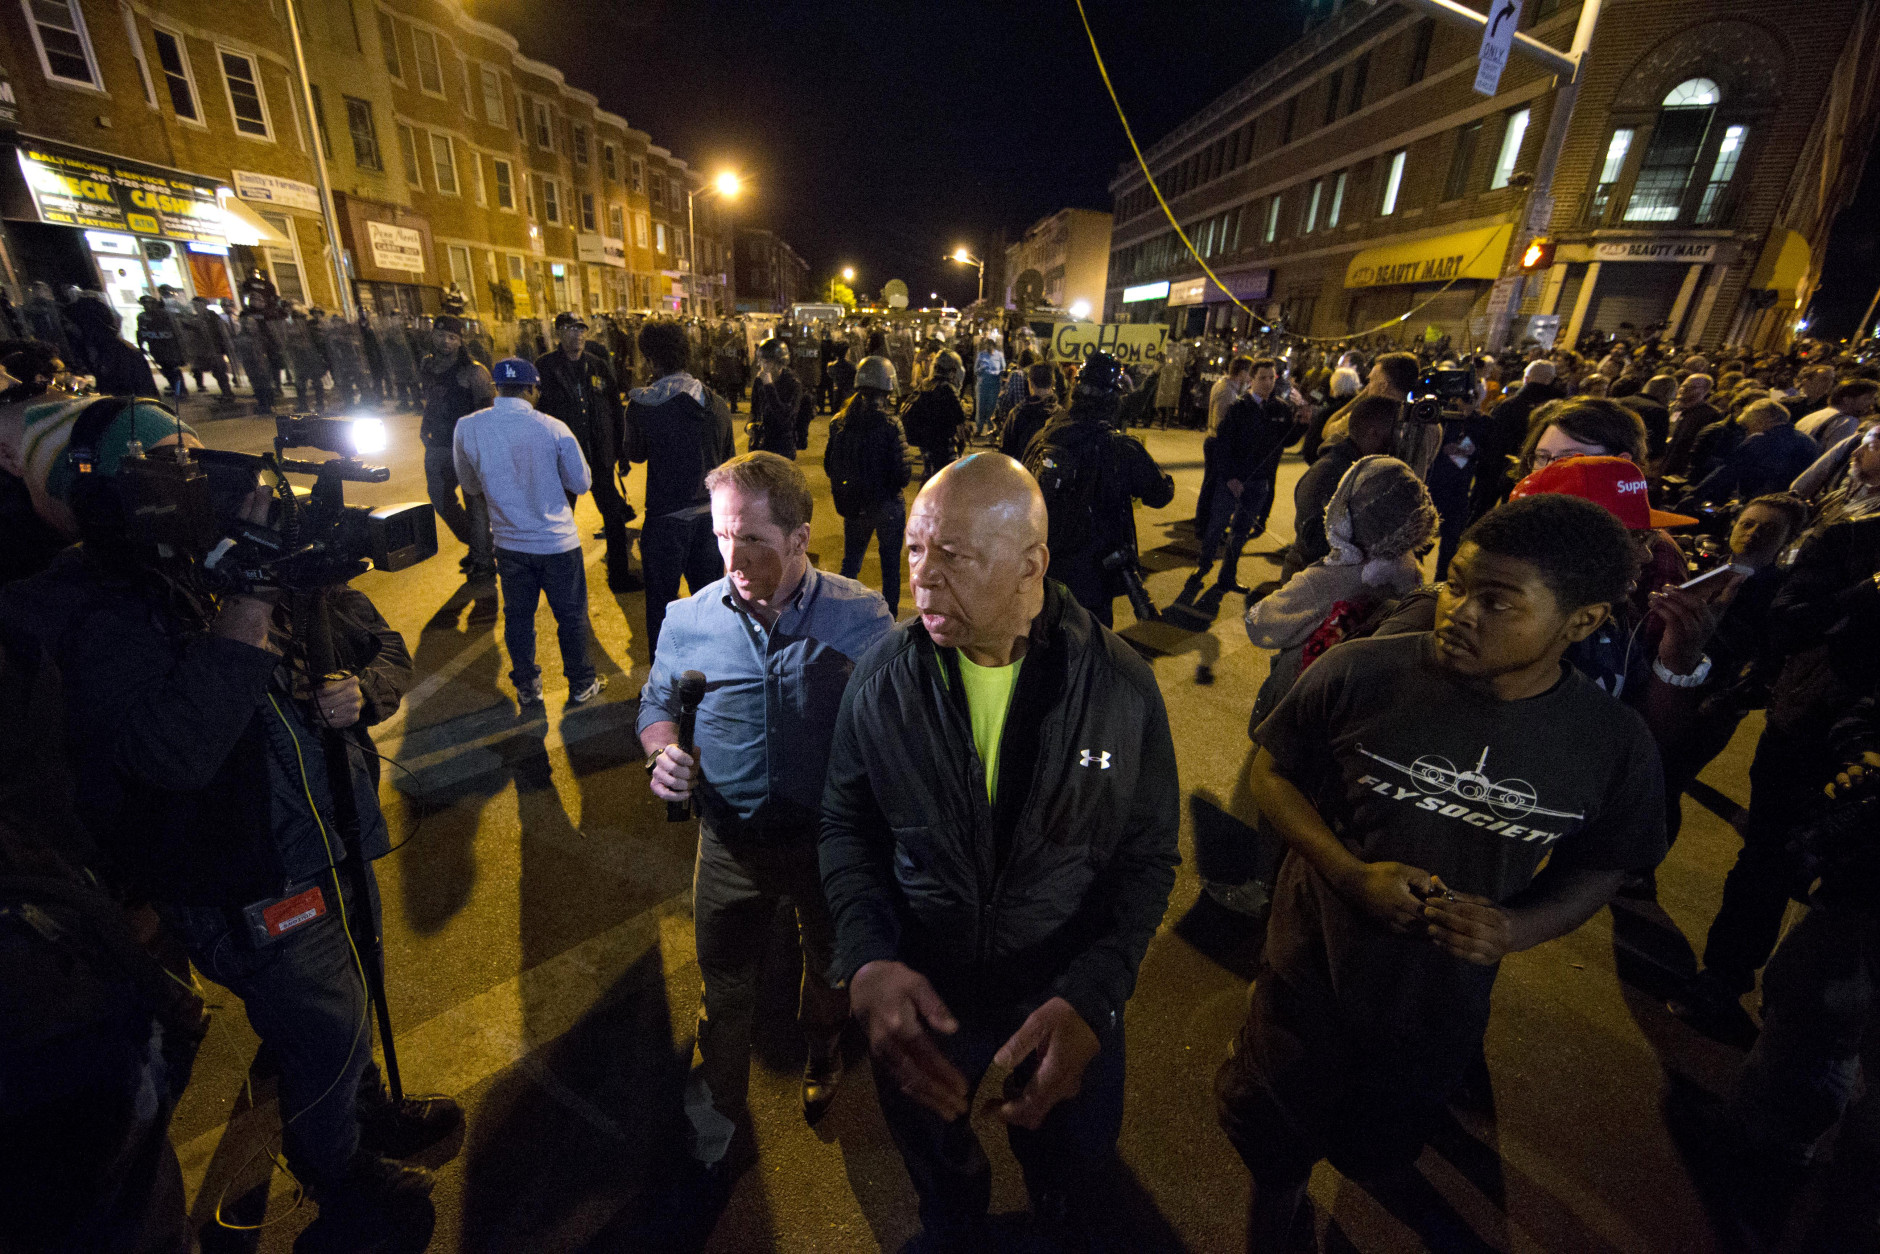 U.S. Rep. Elijah Cummings, D-Md., asks people to go home after the 10 p.m. curfew Tuesday, April 28, 2015, in Baltimore. A line of police behind riot shields hurled smoke grenades and fired pepper balls at dozens of protesters to enforce a citywide curfew. (AP Photo/Matt Rourke)